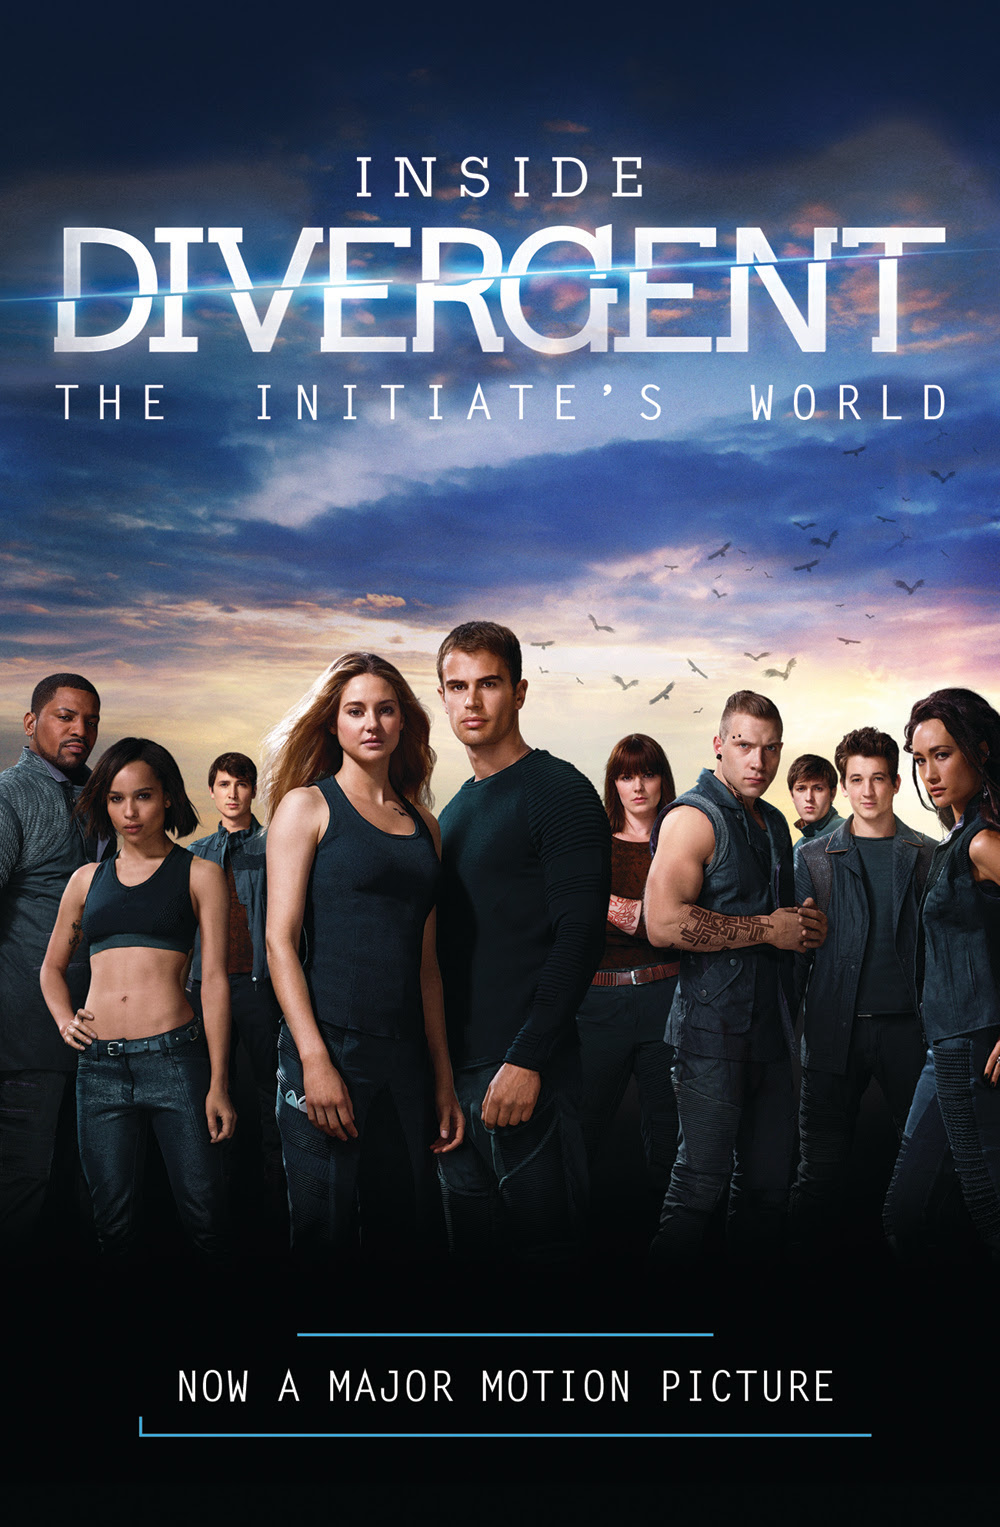 http://iamdivergentdotcom.files.wordpress.com/2013/11/image16.jpg